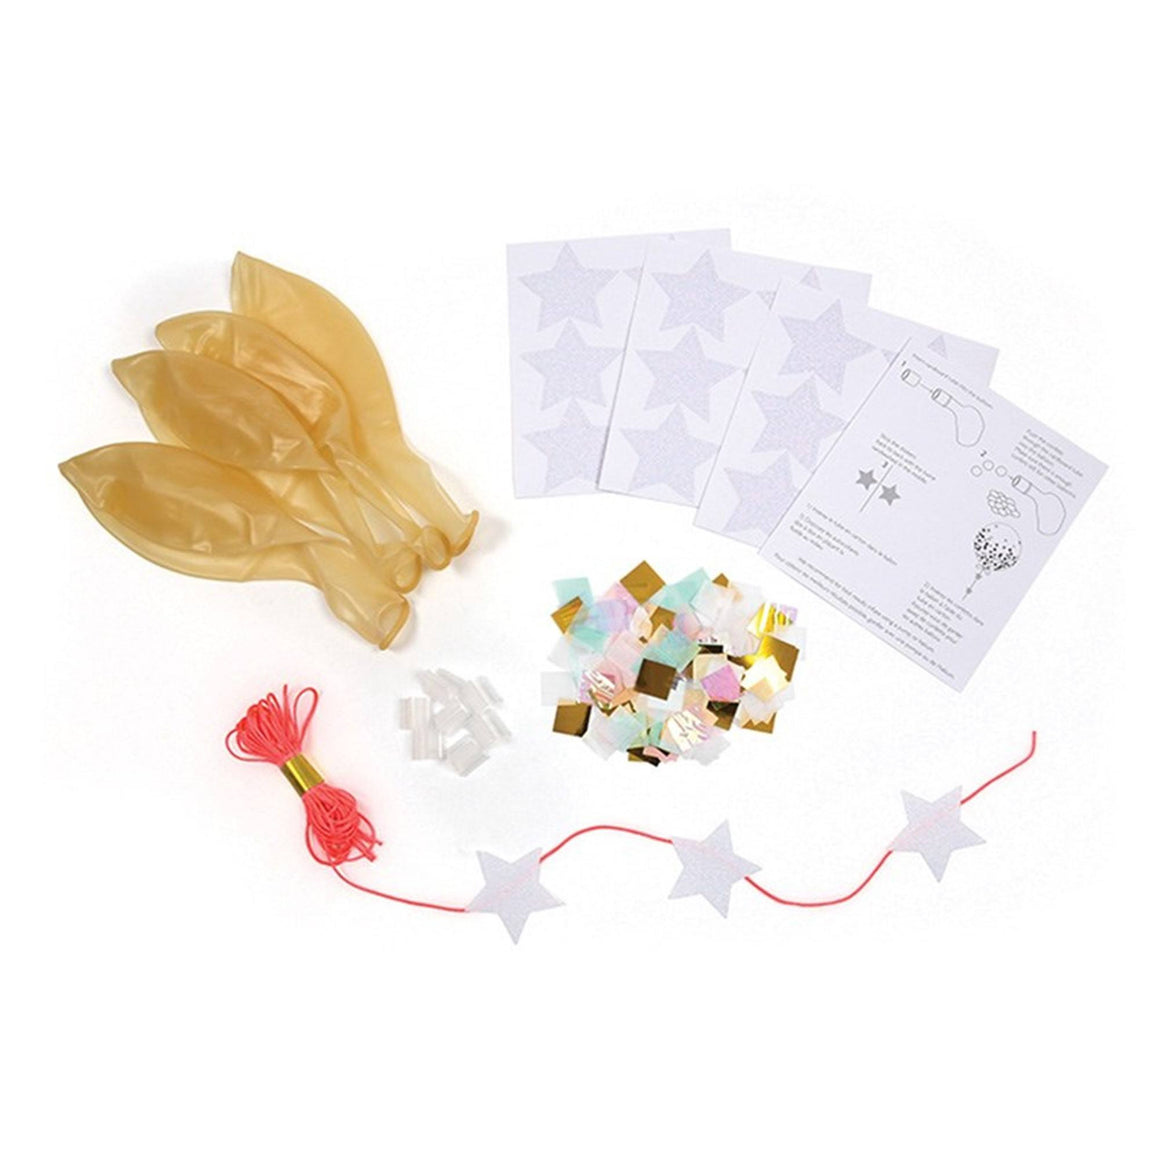 BALLOONS - CONFETTI KIT IRIDESCENT, Balloons, MERI MERI - Bon + Co. Party Studio